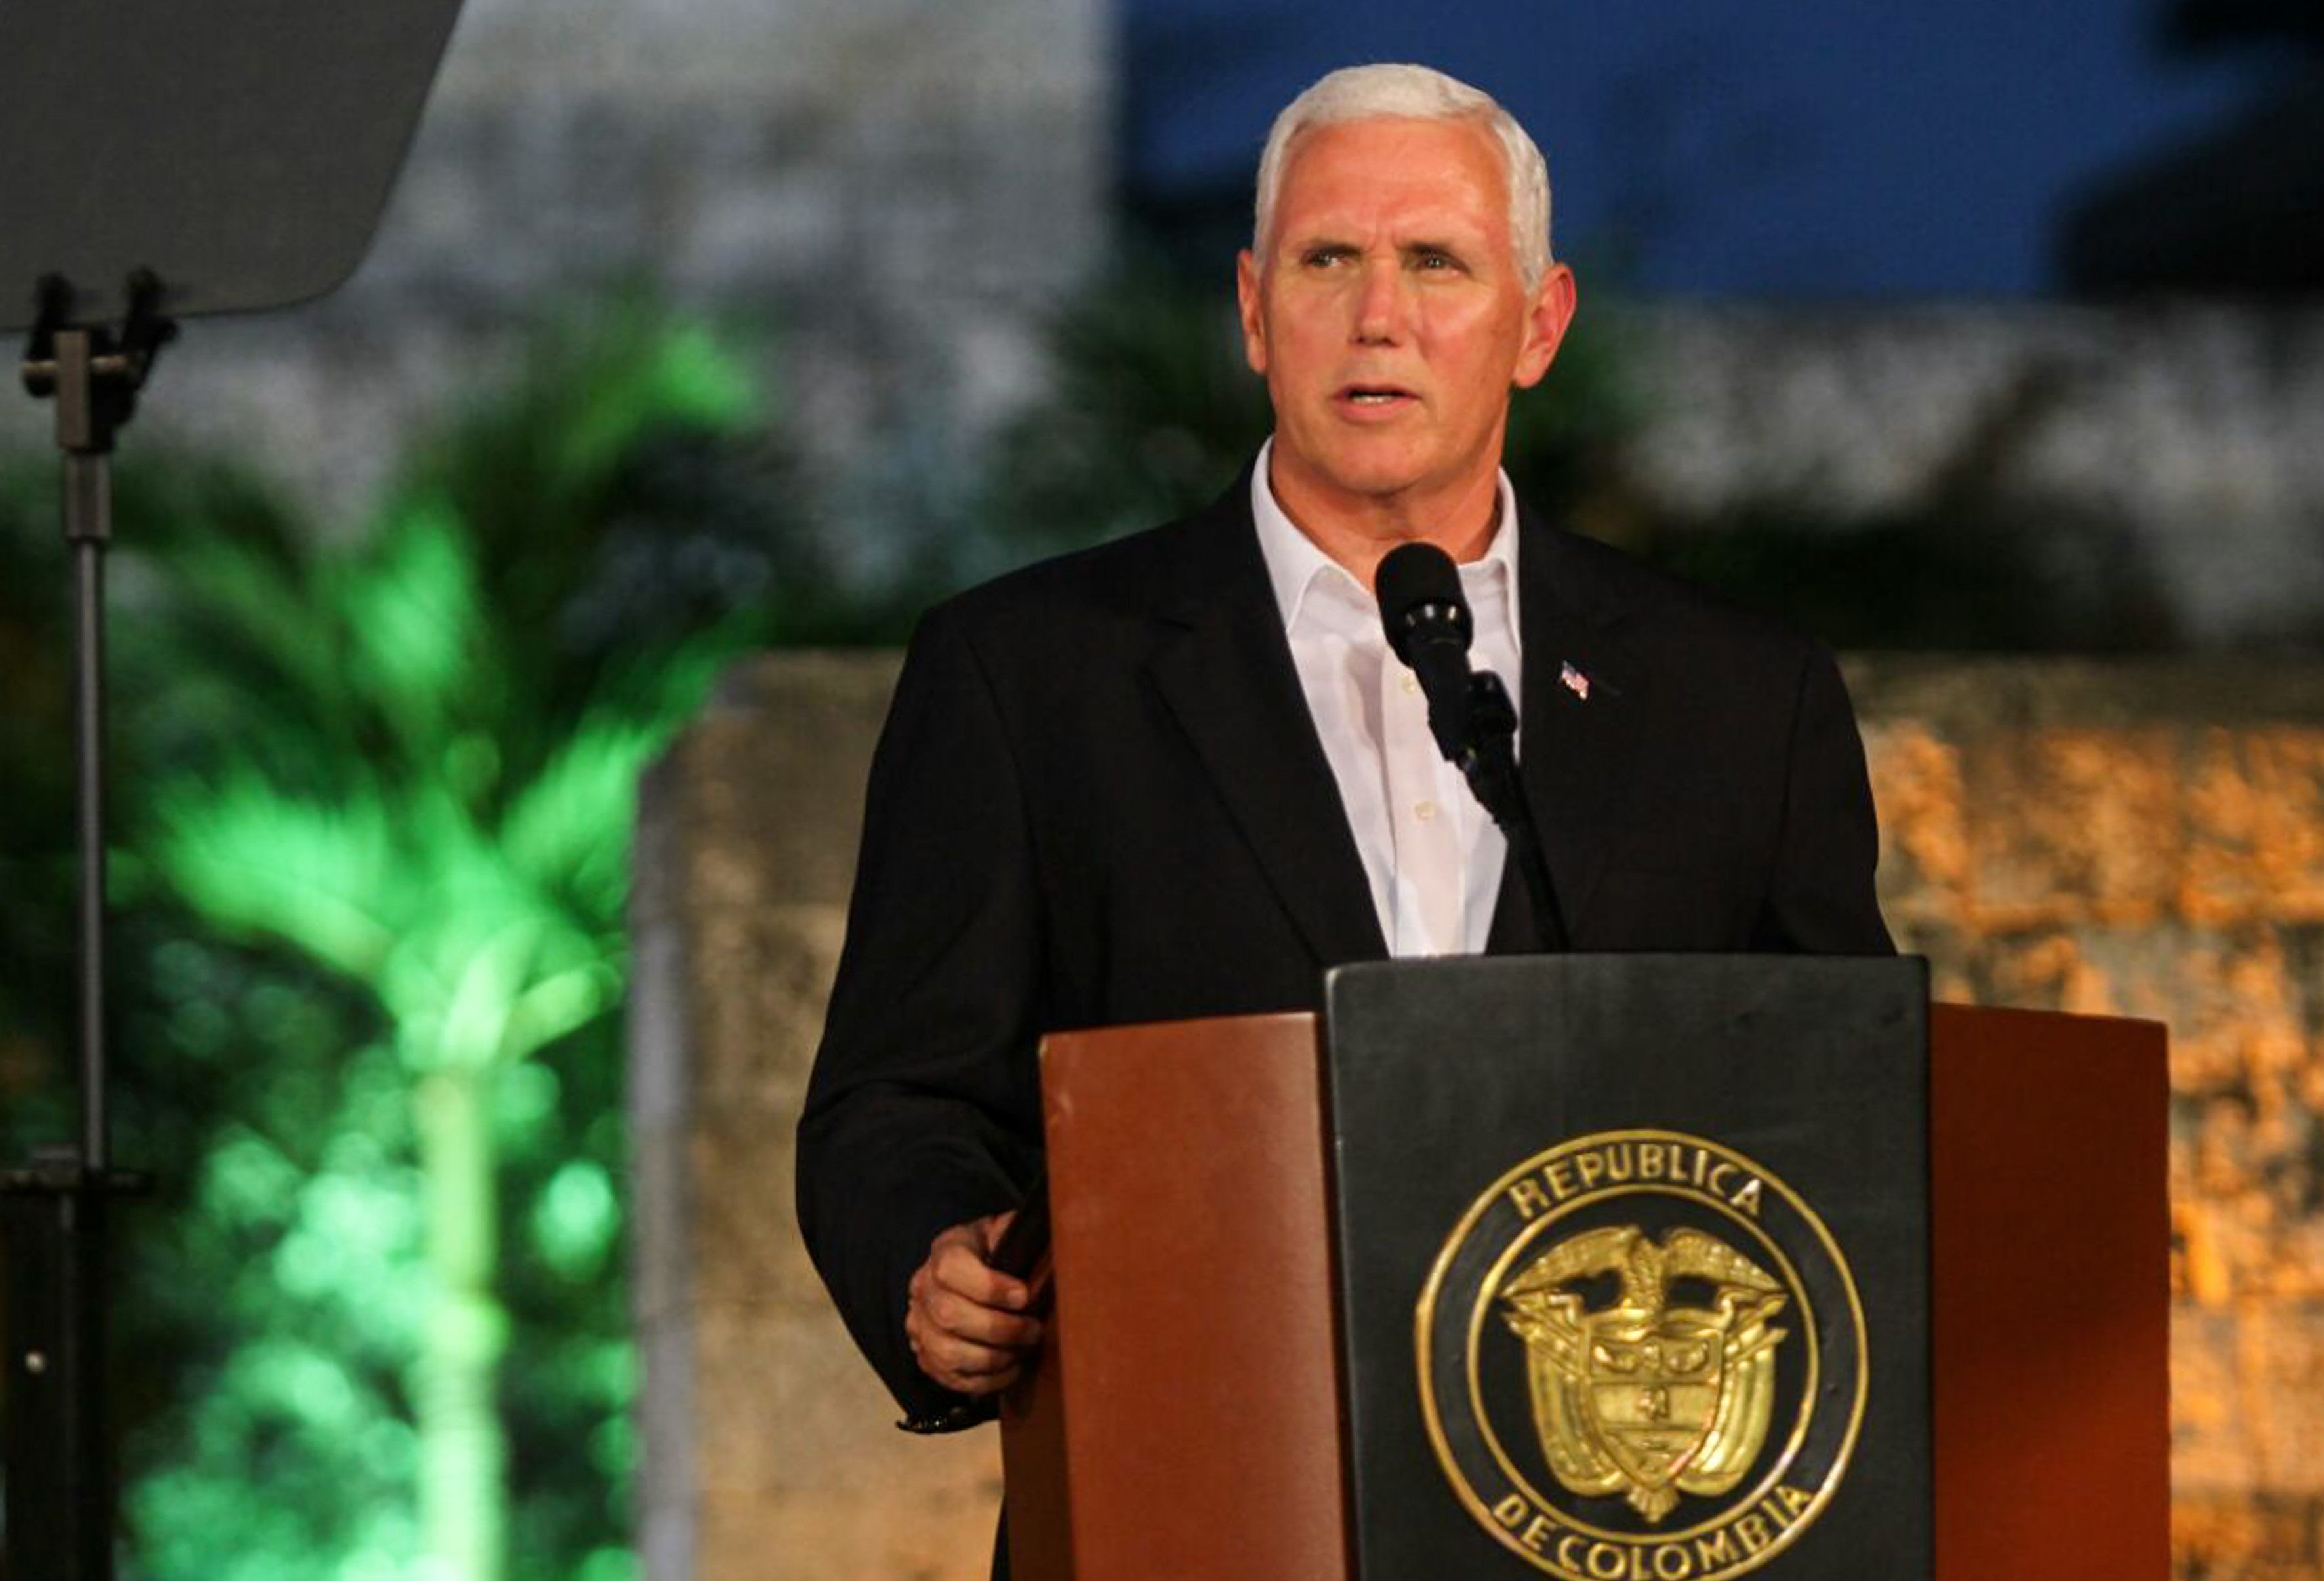 Soldiers removed from Pence detail after bringing women to hotel